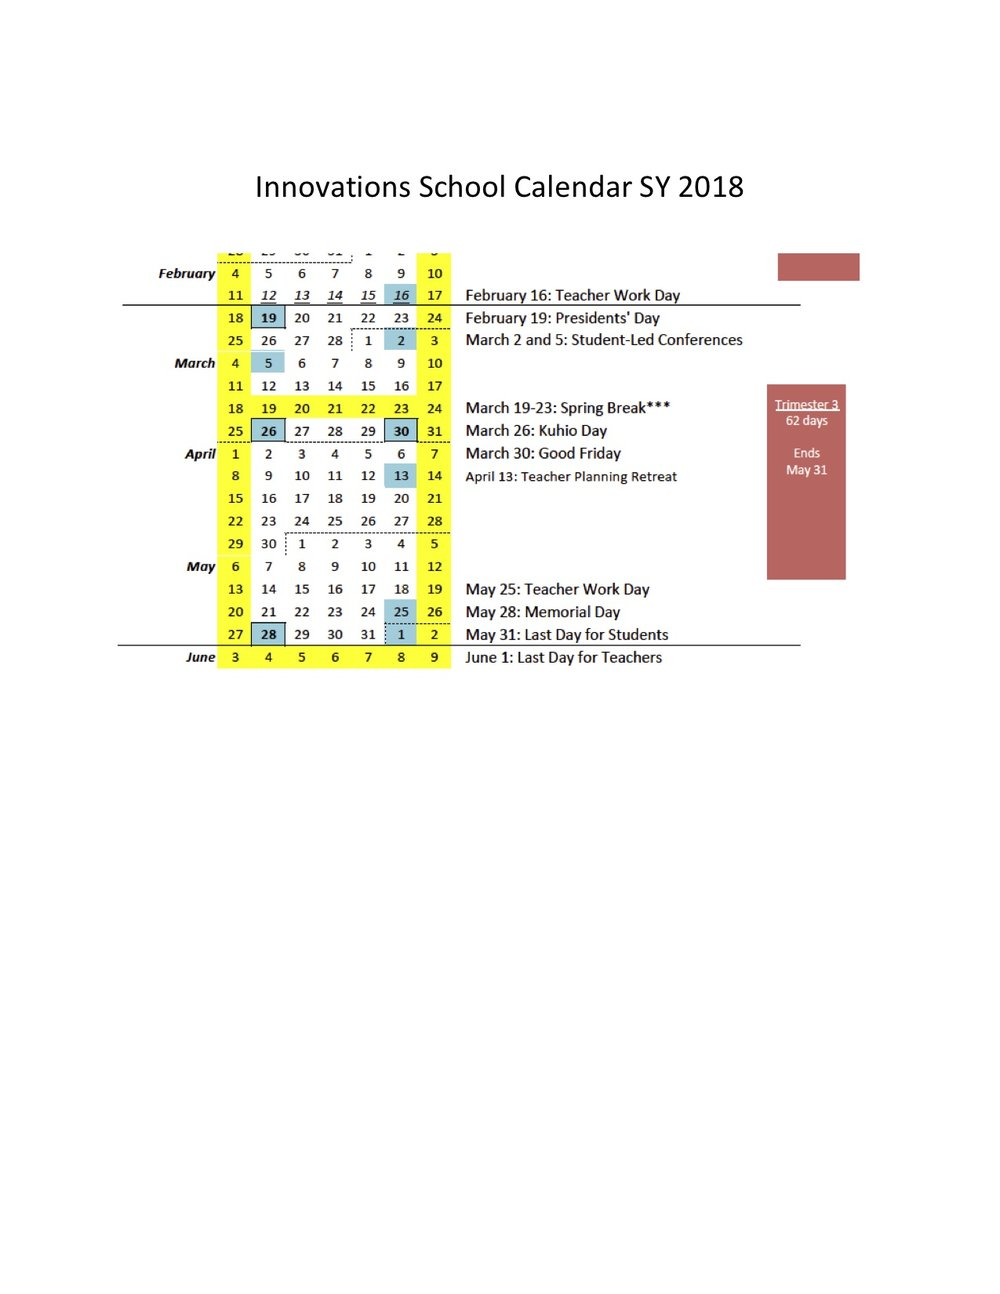 Innovations School Calendar SY 2018.jpg